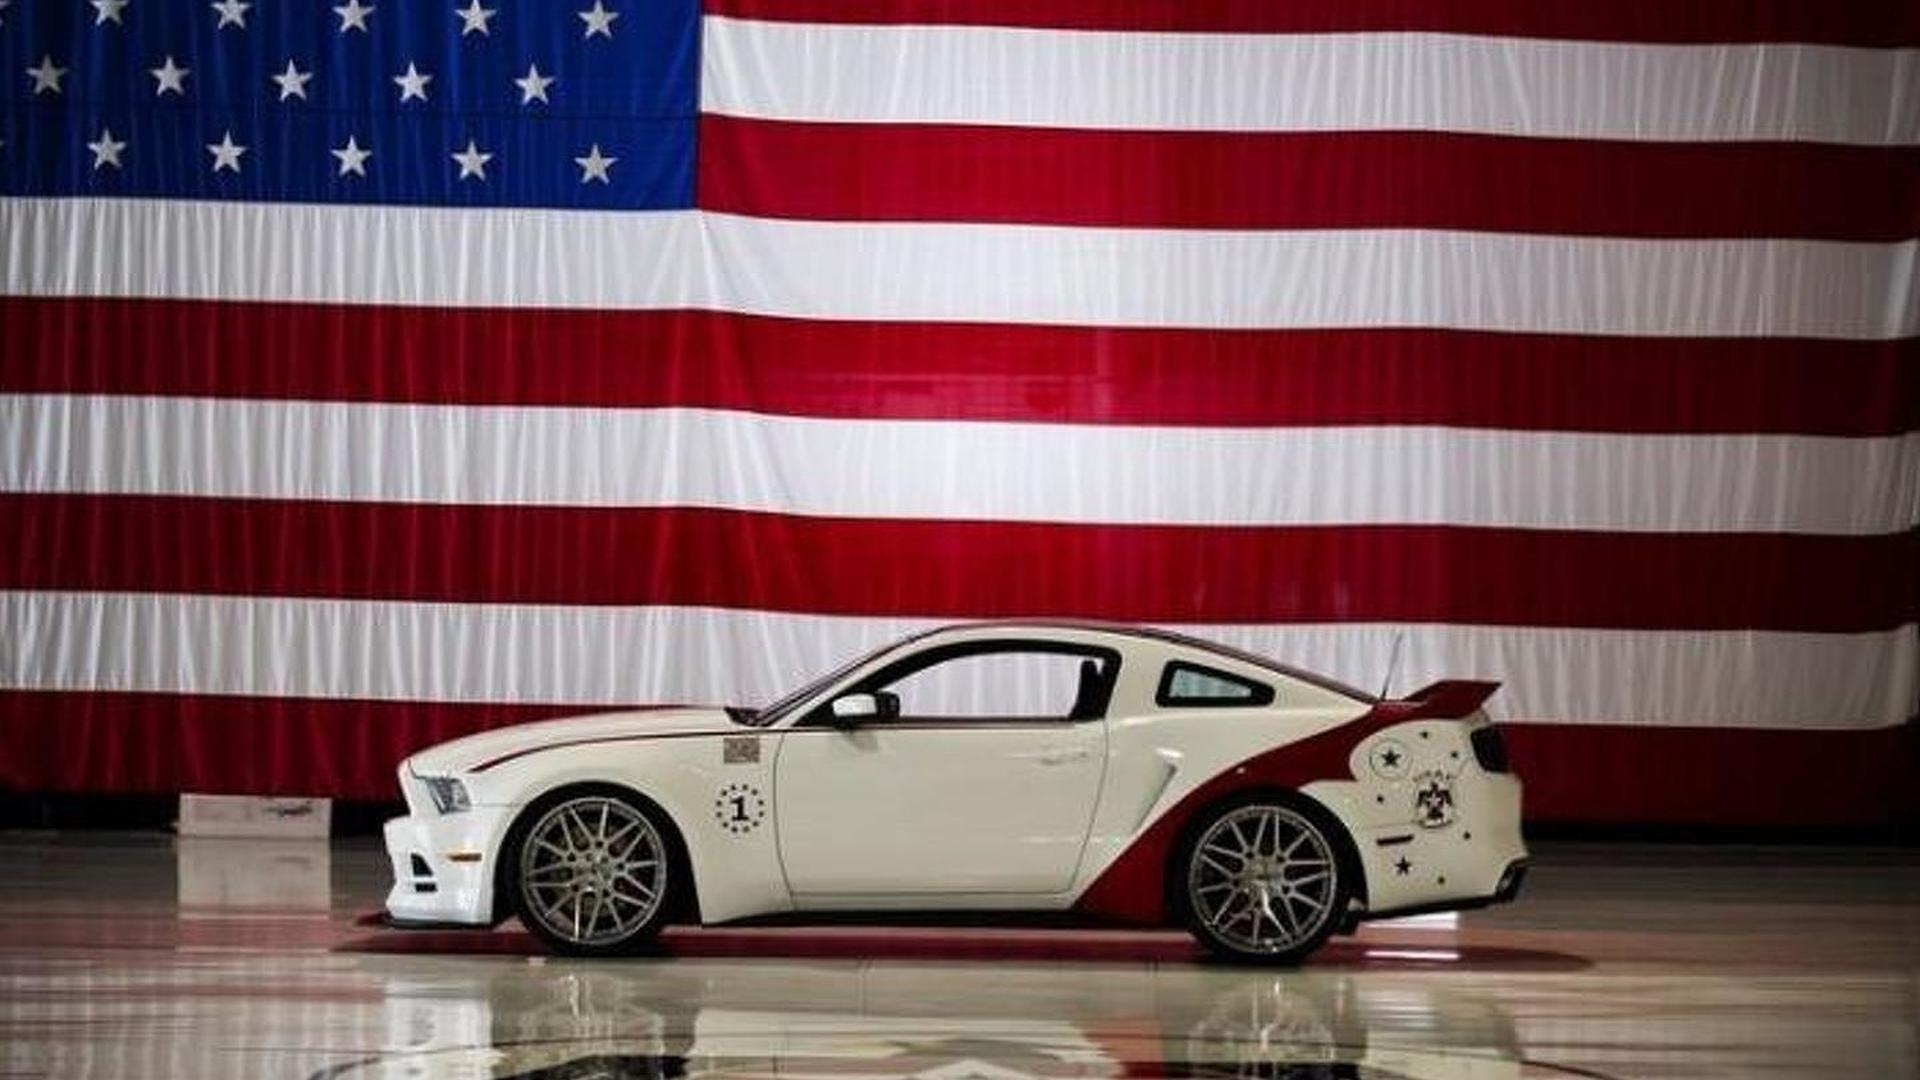 2014 ford mustang u s air force thunderbirds edition sold for 398000 usd